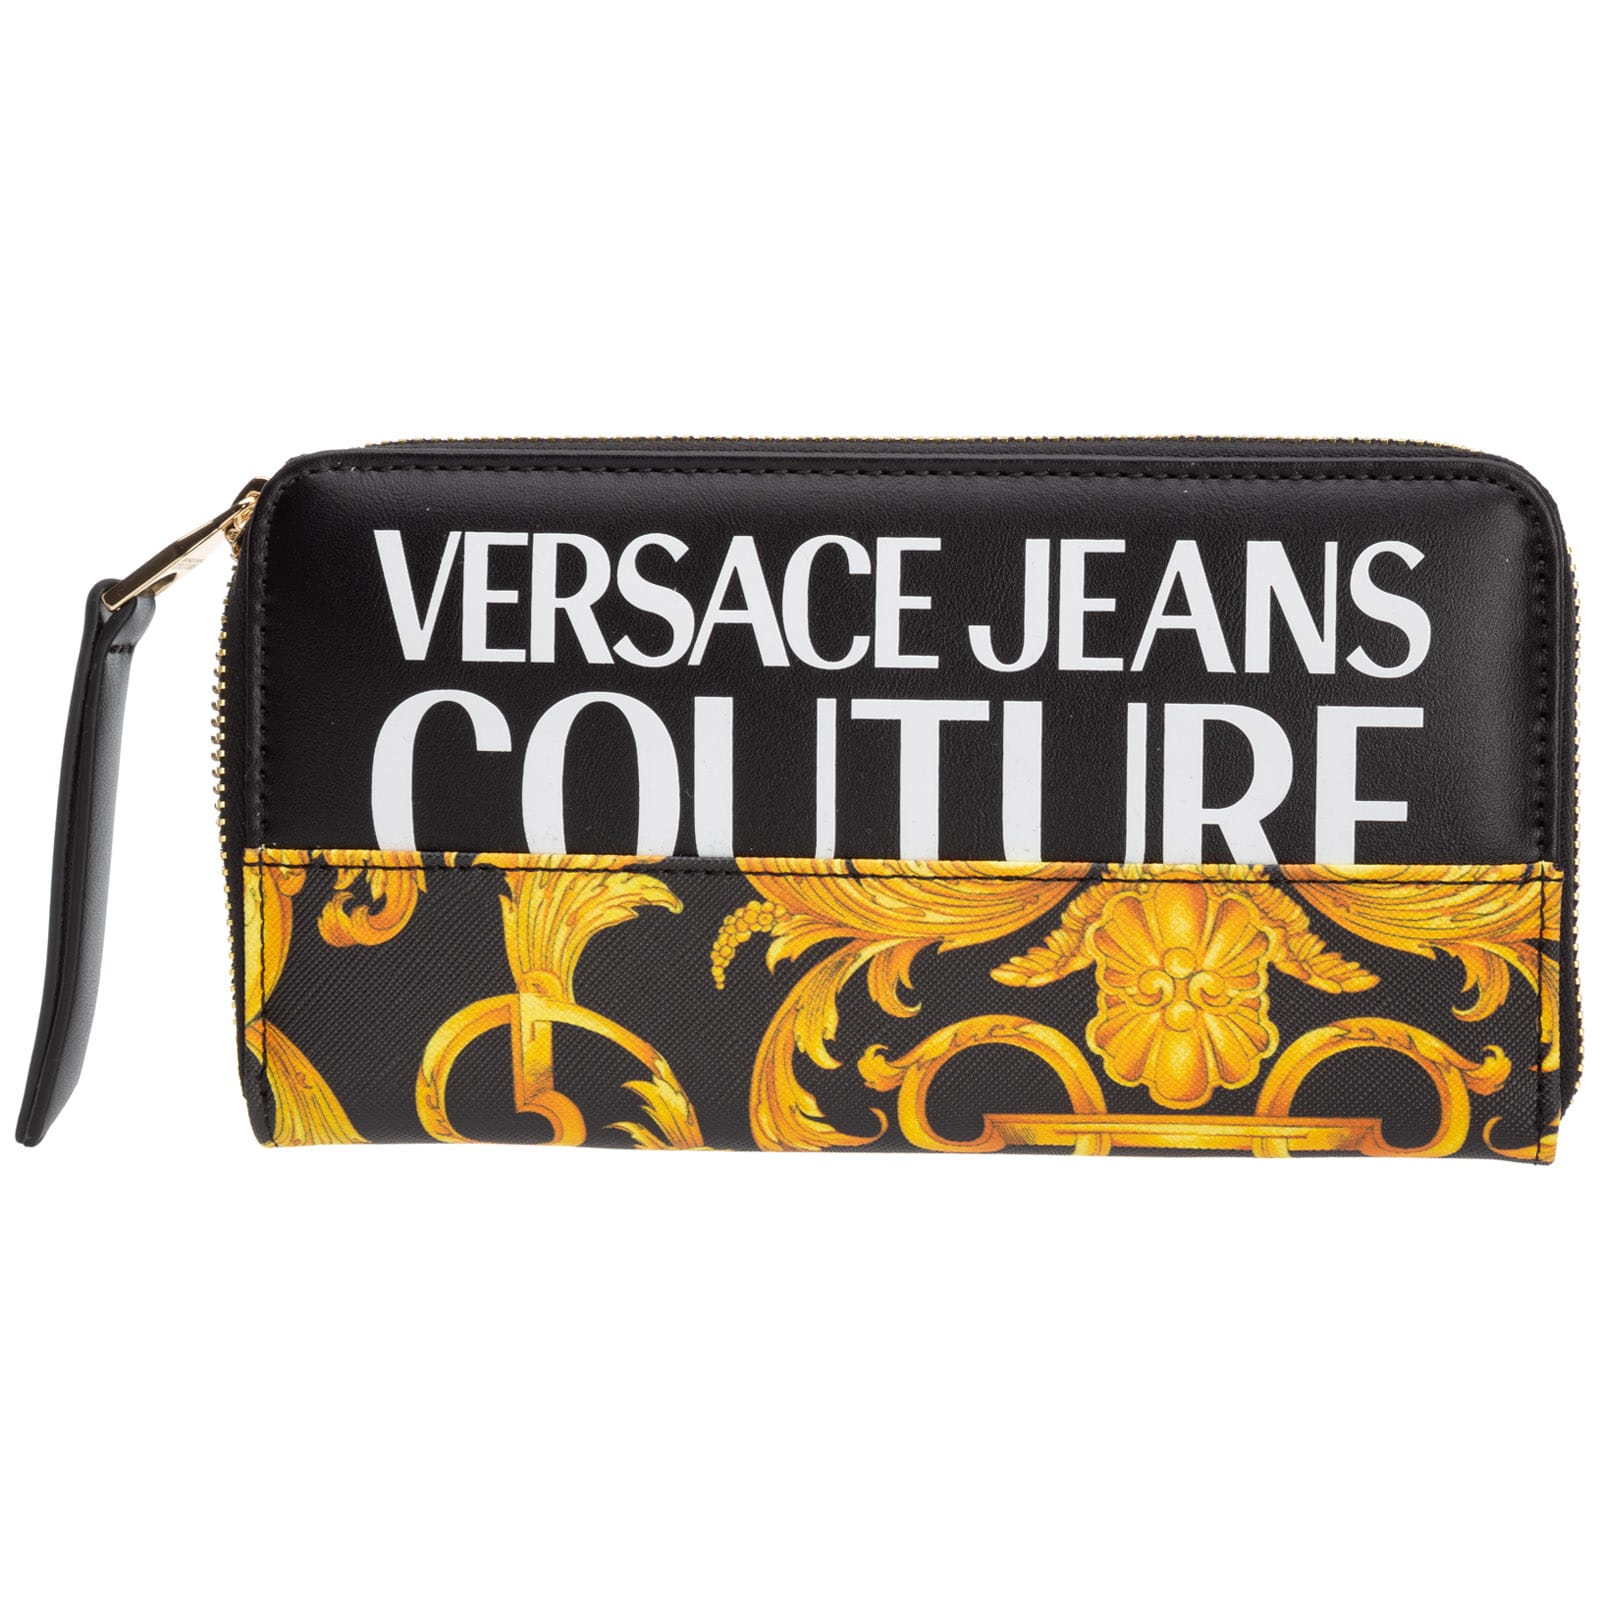 Versace Jeans Couture Wallets BAROQUE WALLET